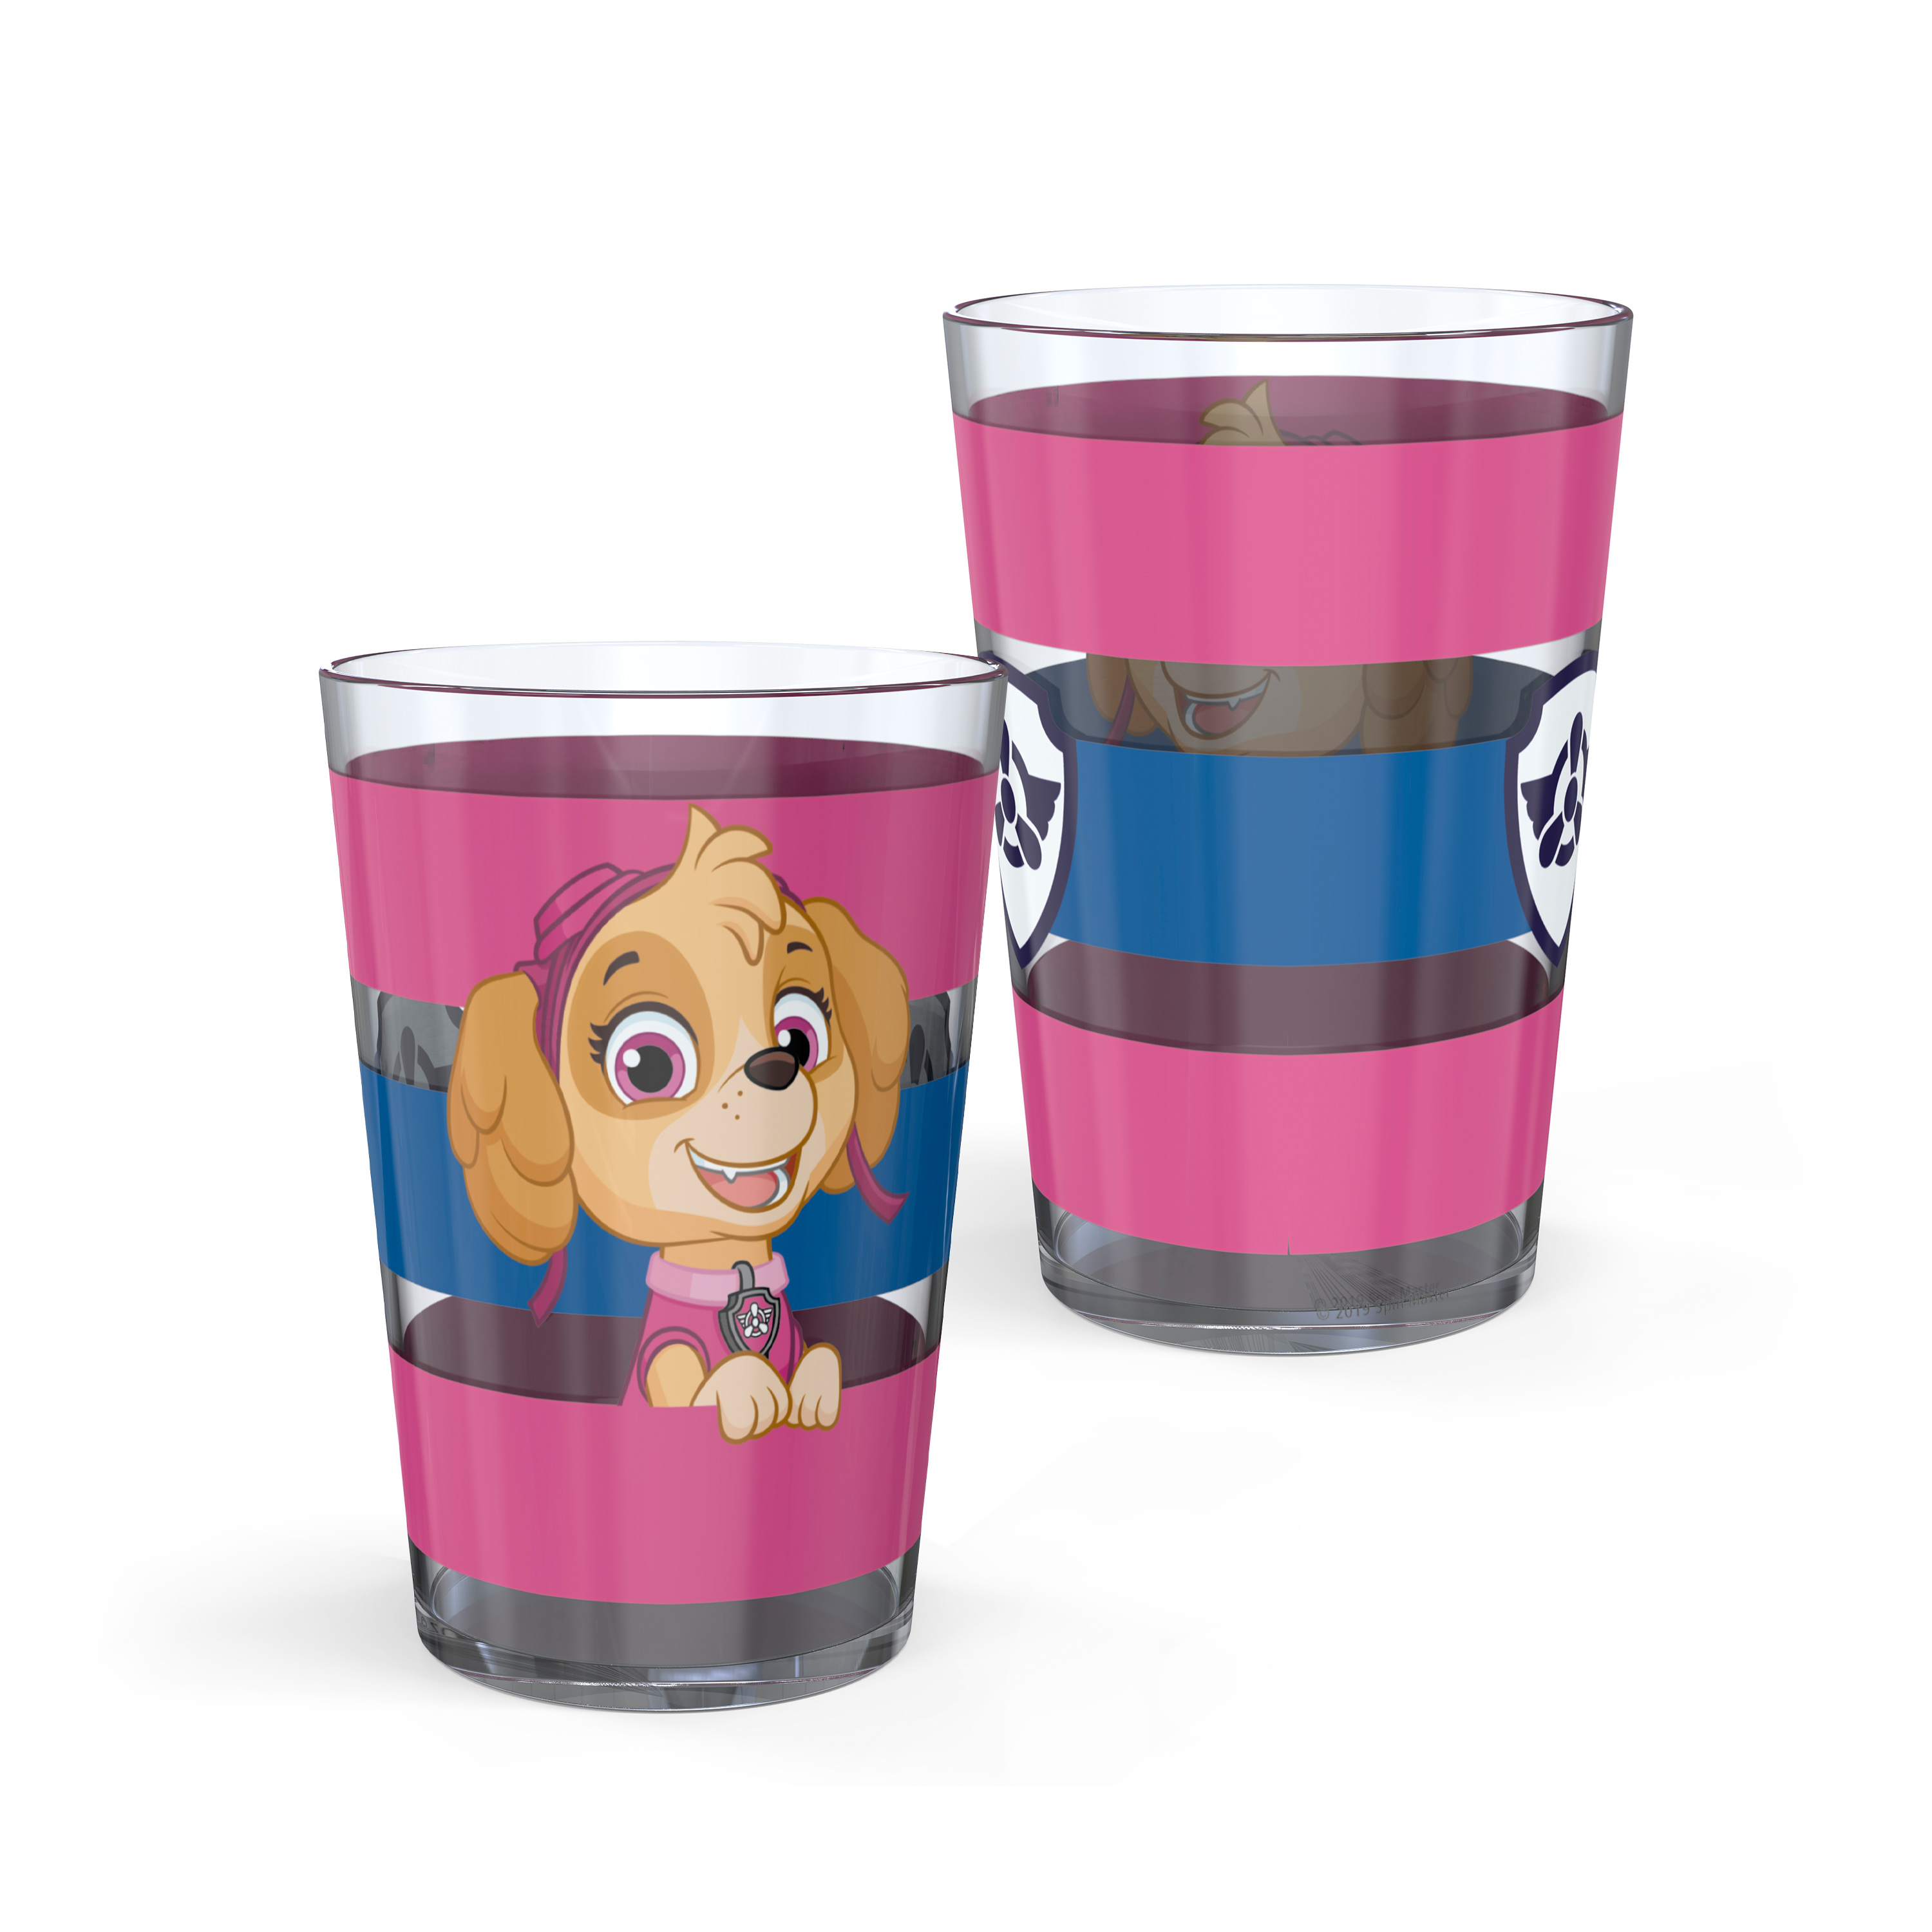 Paw Patrol 14.5 ounce Tumbler, Chase, Skye and Friends, 4-piece set slideshow image 7